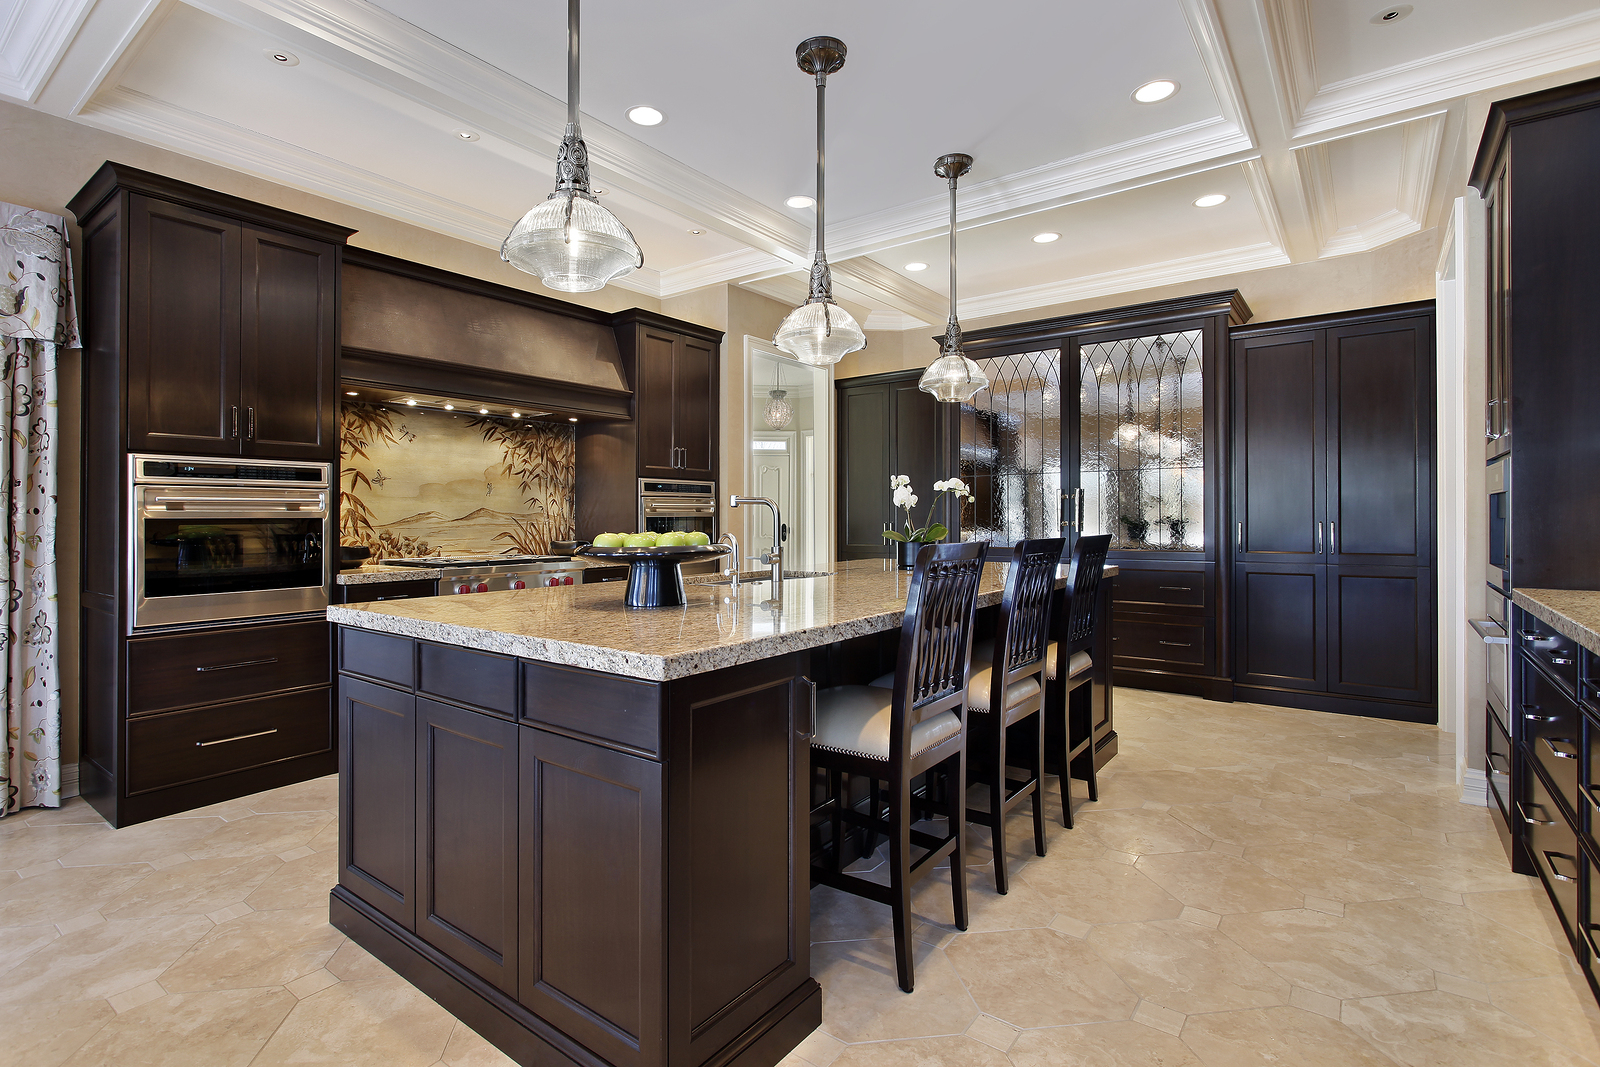 Fresh coat of paint light vs dark kitchens for Dark kitchen cabinets with light island